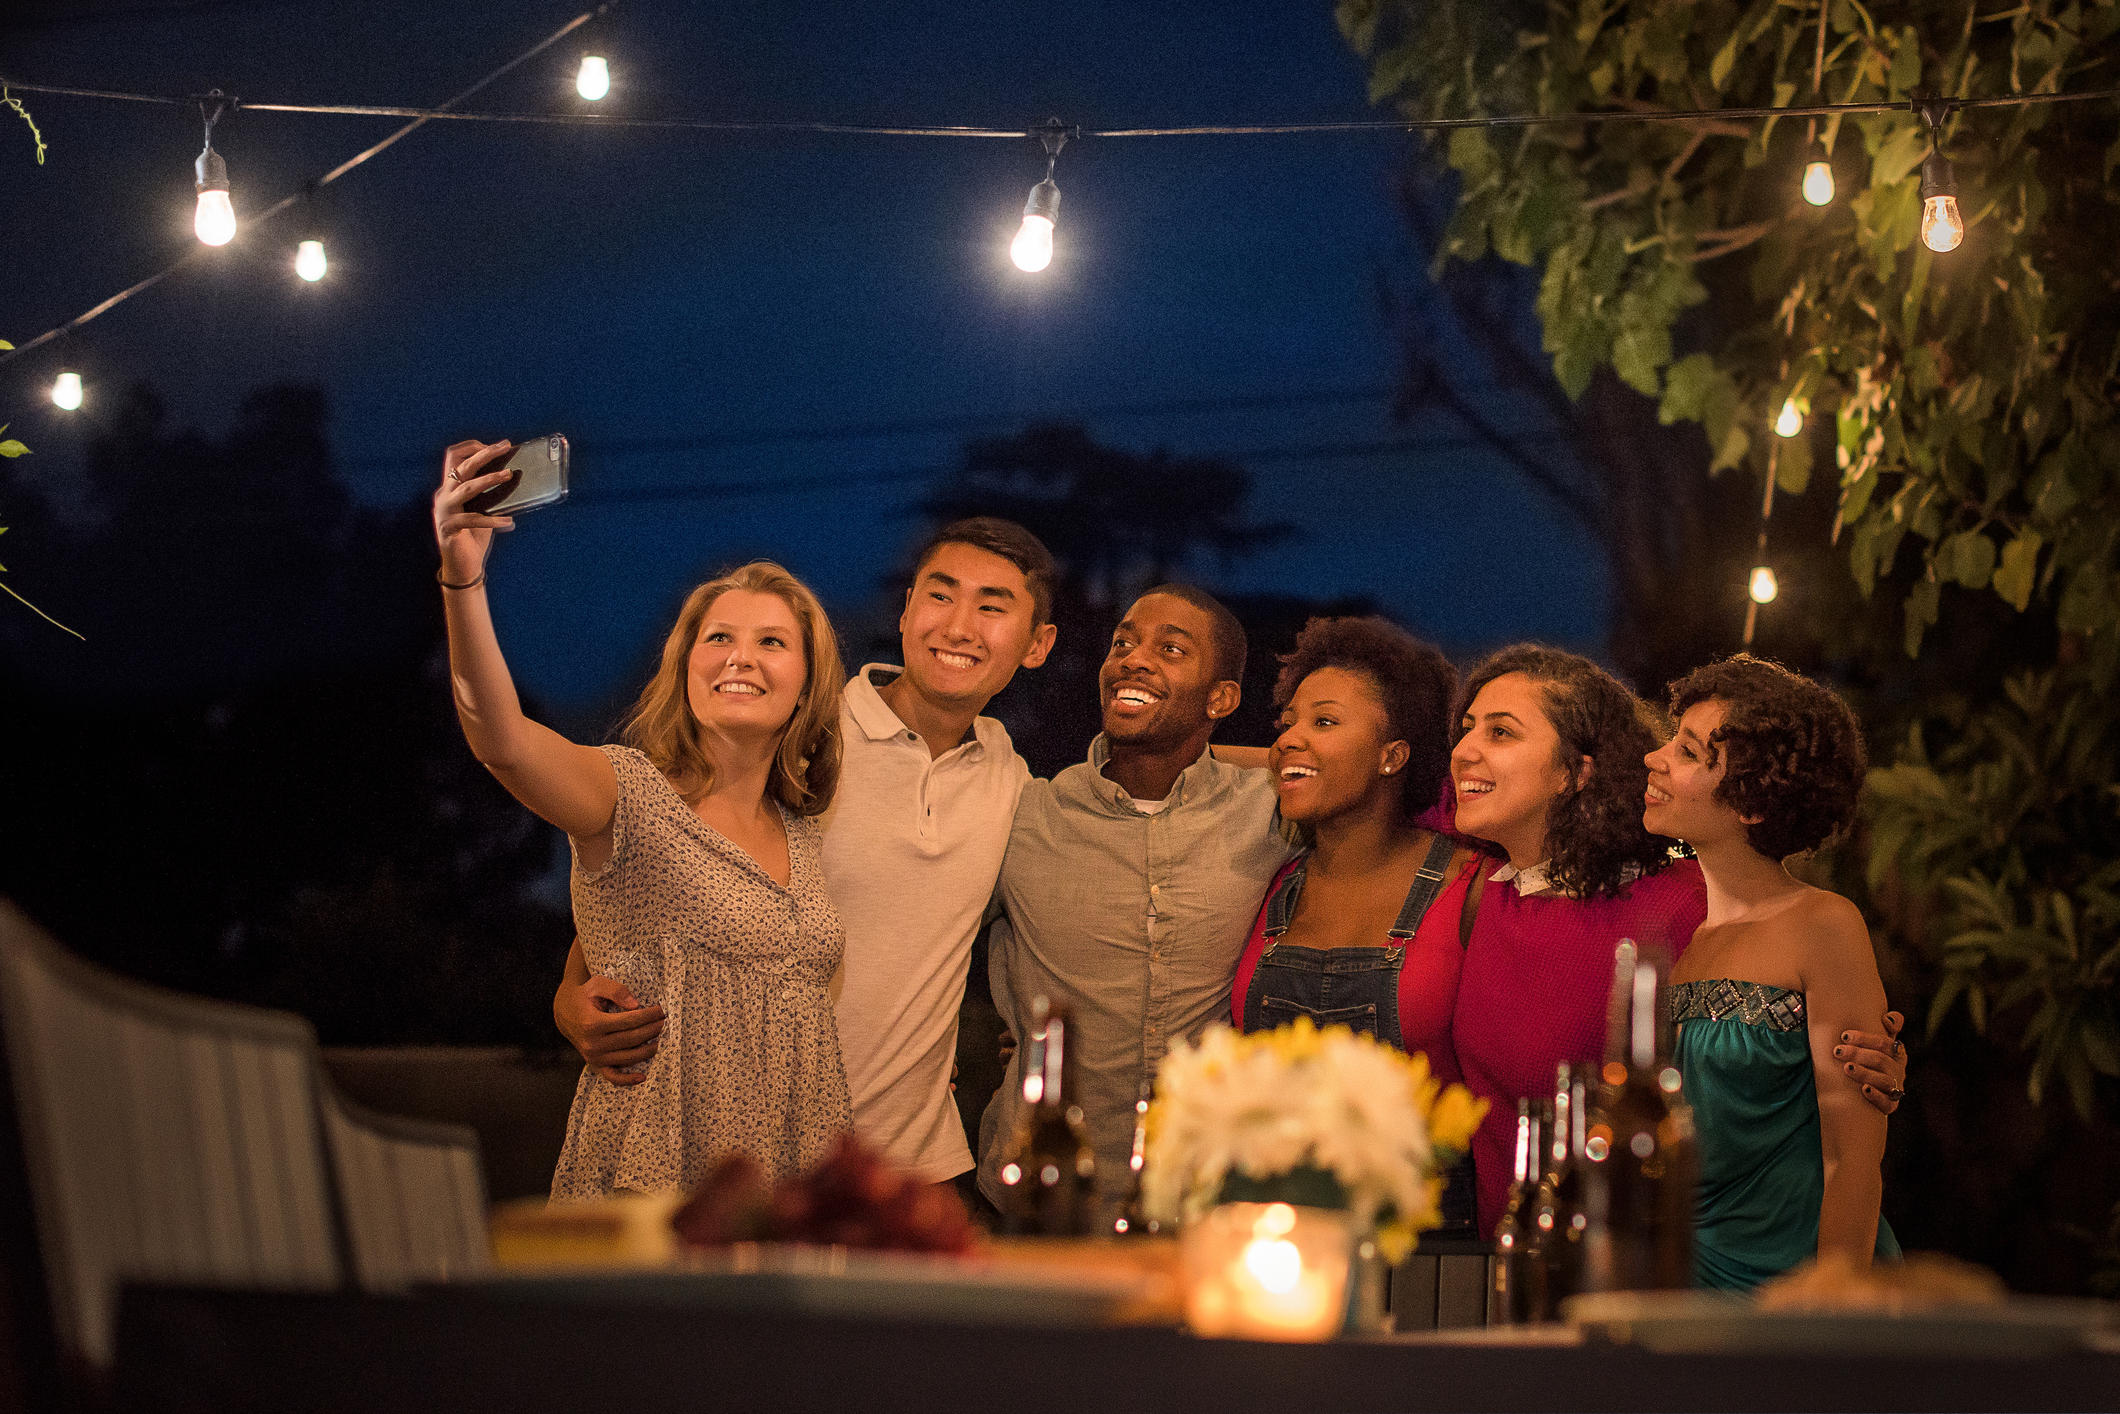 Multi ethnic hipsters all gathered around taking a group selfie at a summer BBQ.